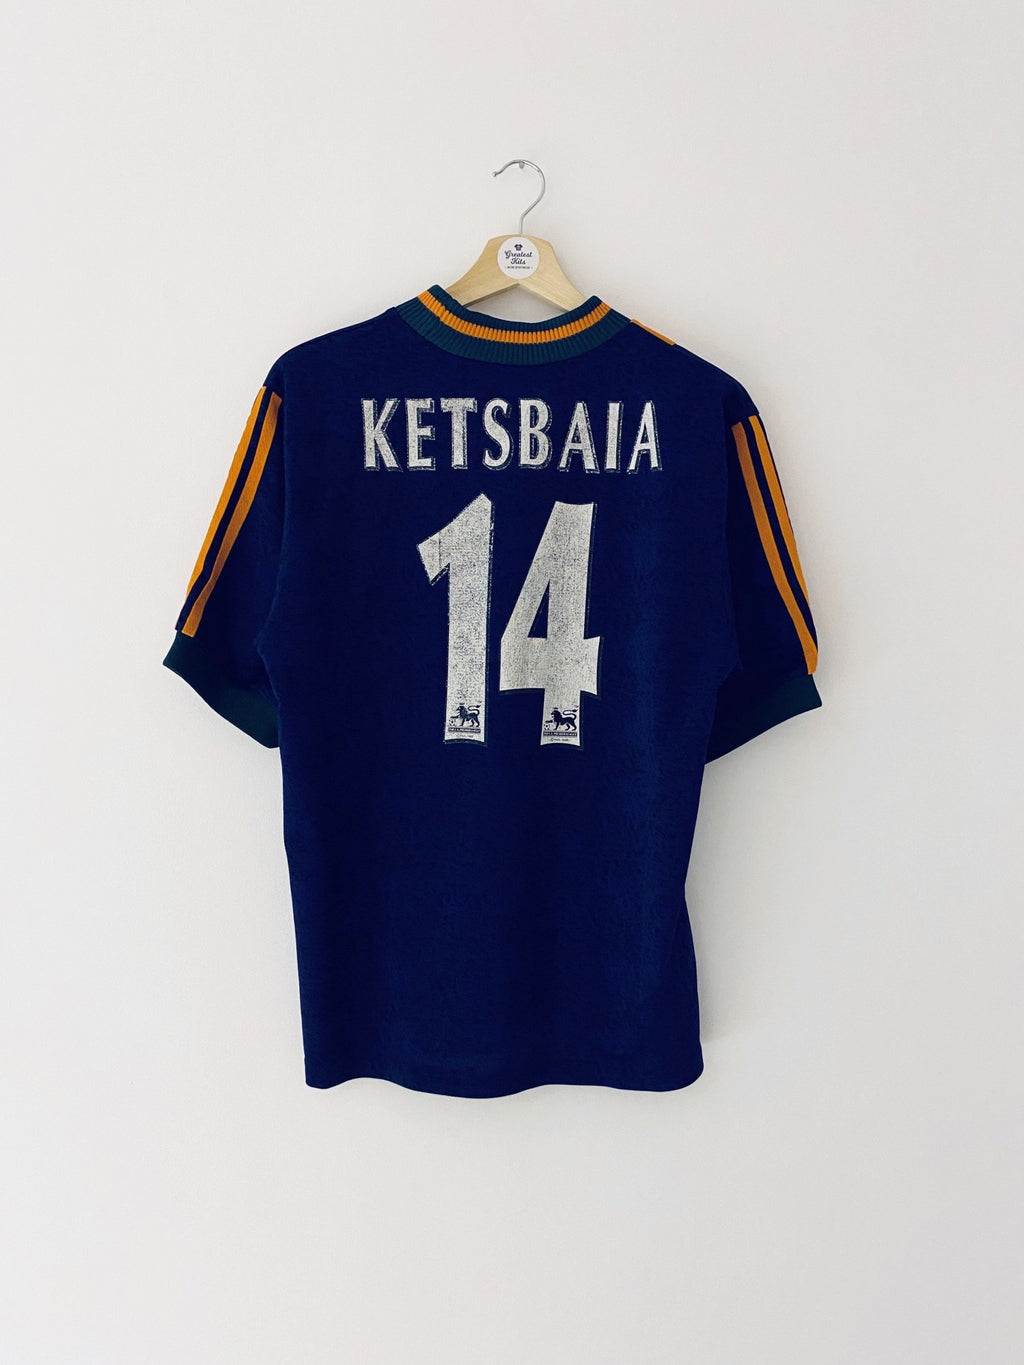 1997/98 Newcastle Away Shirt Ketsbaia #14 (S) 7/10